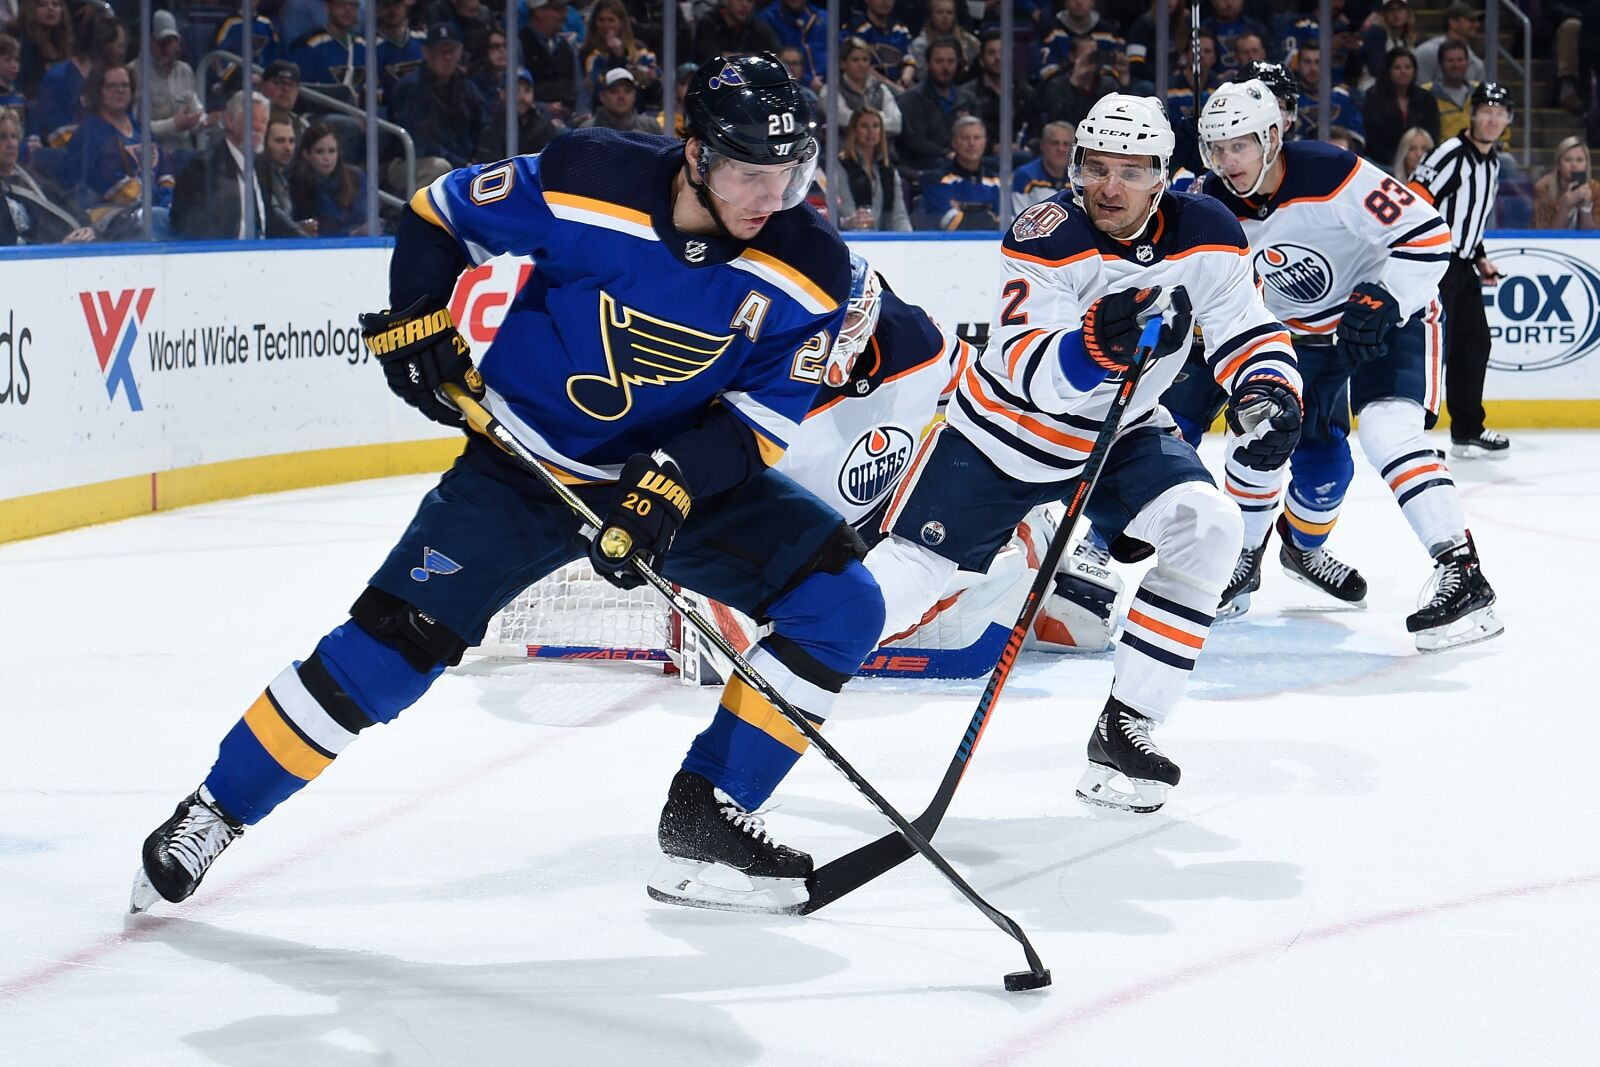 St. Louis Blues Alexander Steen Joins Heavy Hitters With Milestone